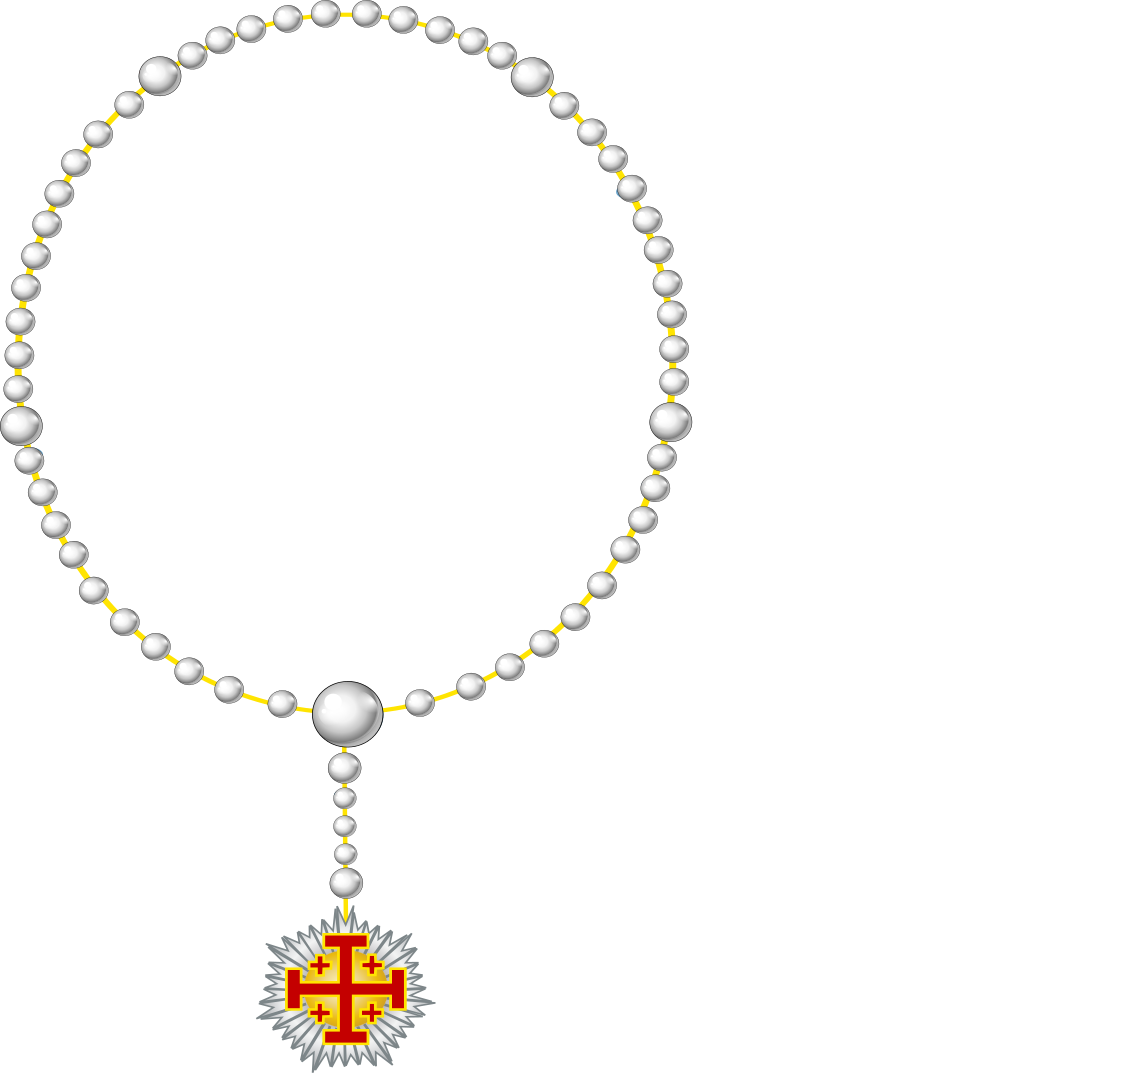 Rosary transparent svg. File herardic of the